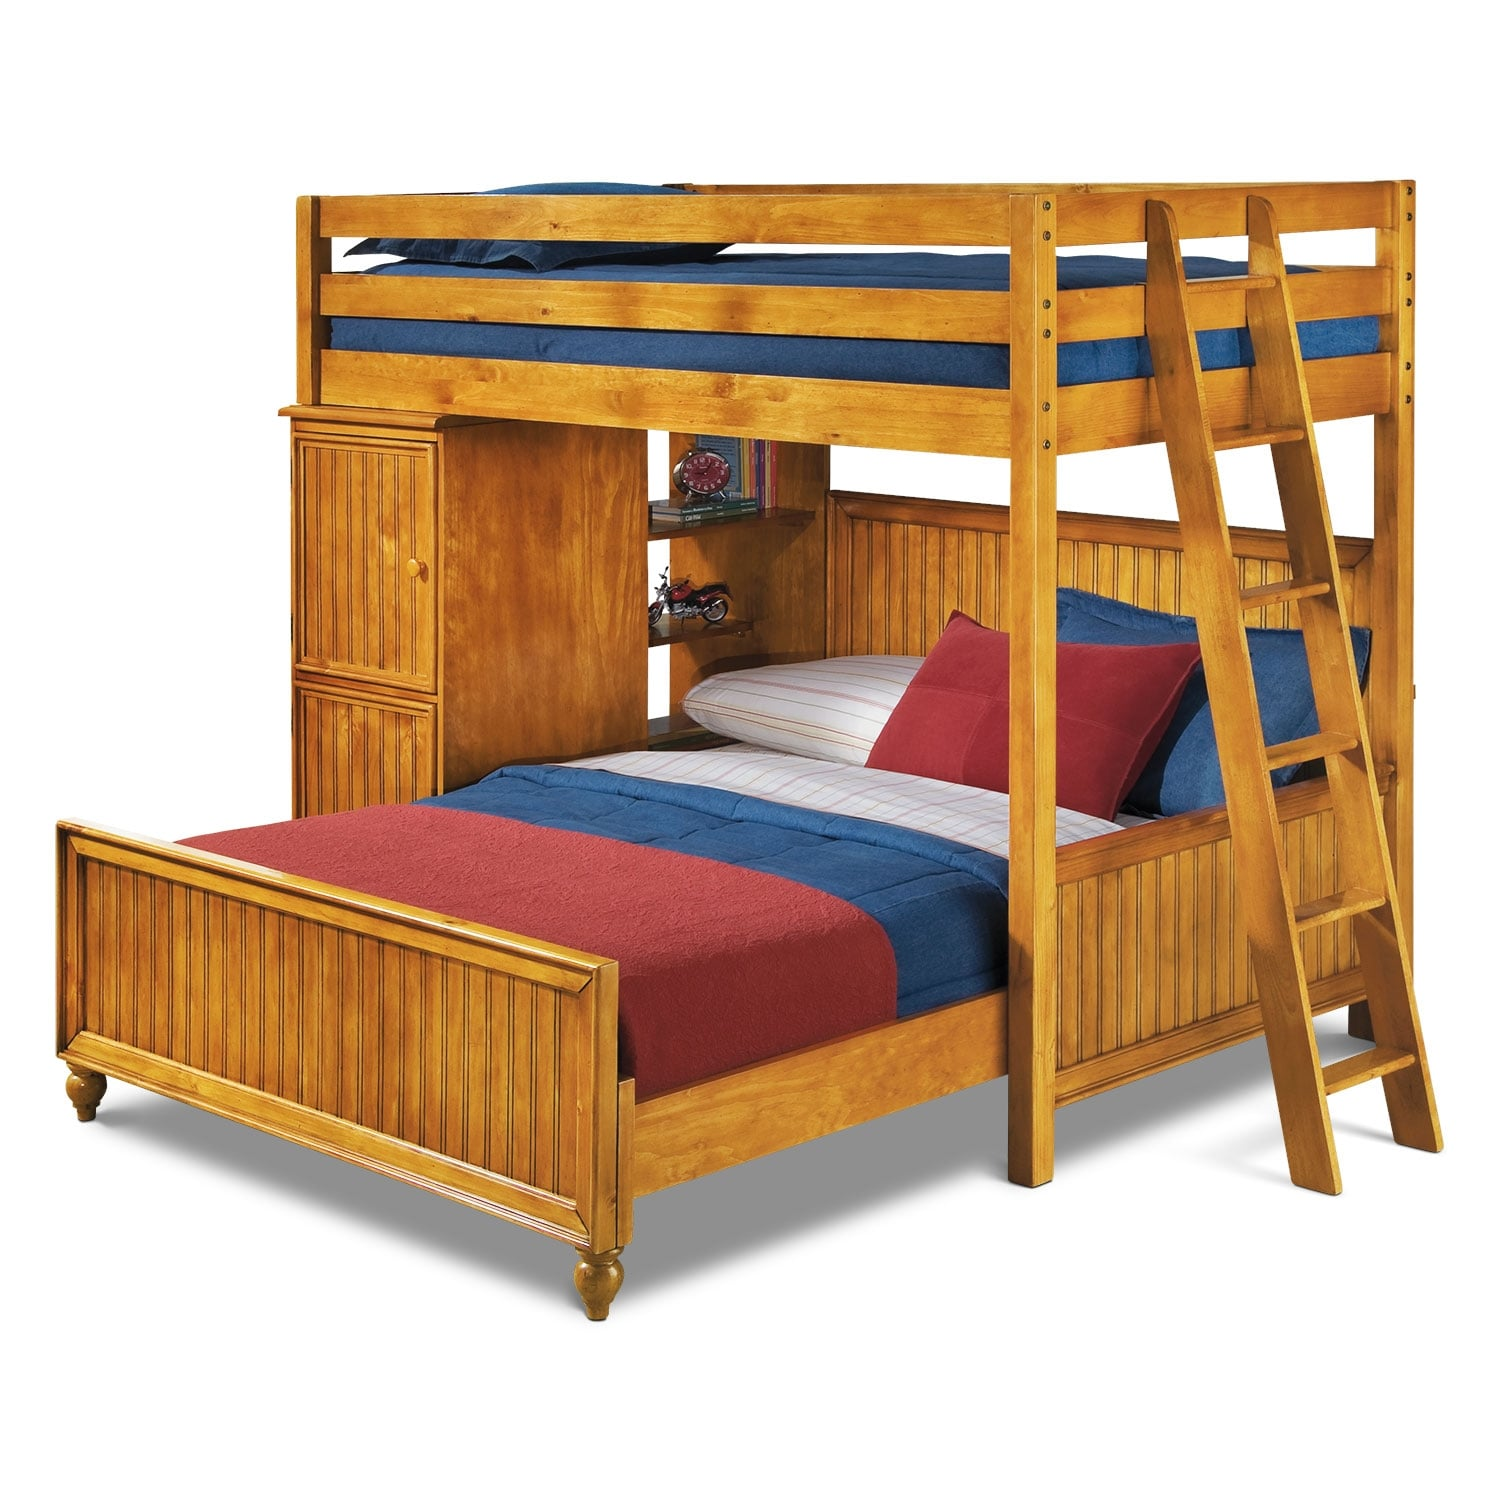 Kids Furniture - Colorworks Loft Bed with Full Bed - Honey Pine  sc 1 st  American Signature Furniture & Colorworks Loft Bed with Full Bed - Honey Pine | American ...